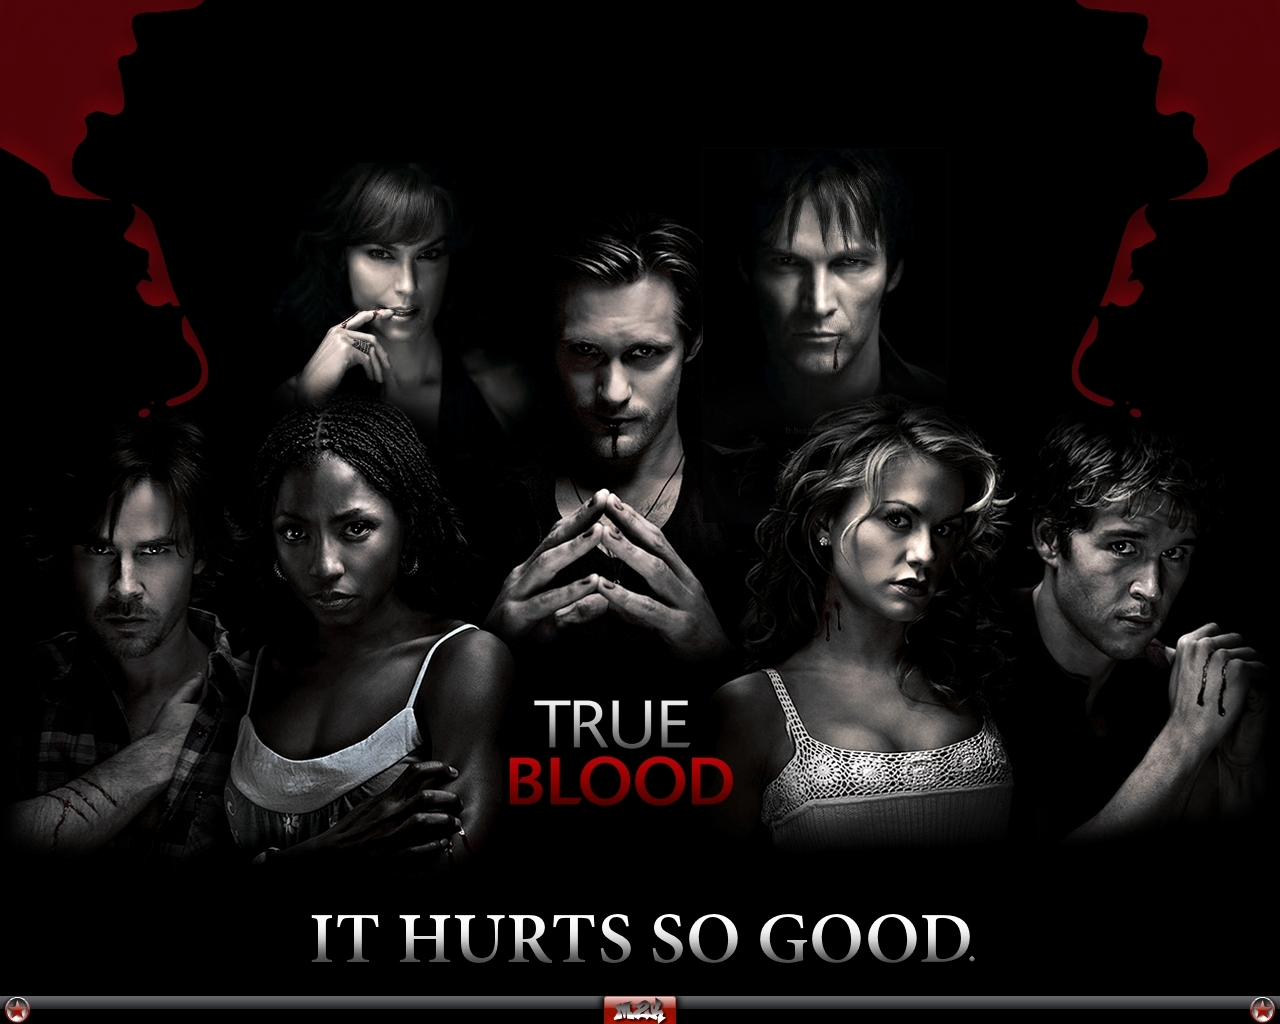 true-blood-true-blood.jpg